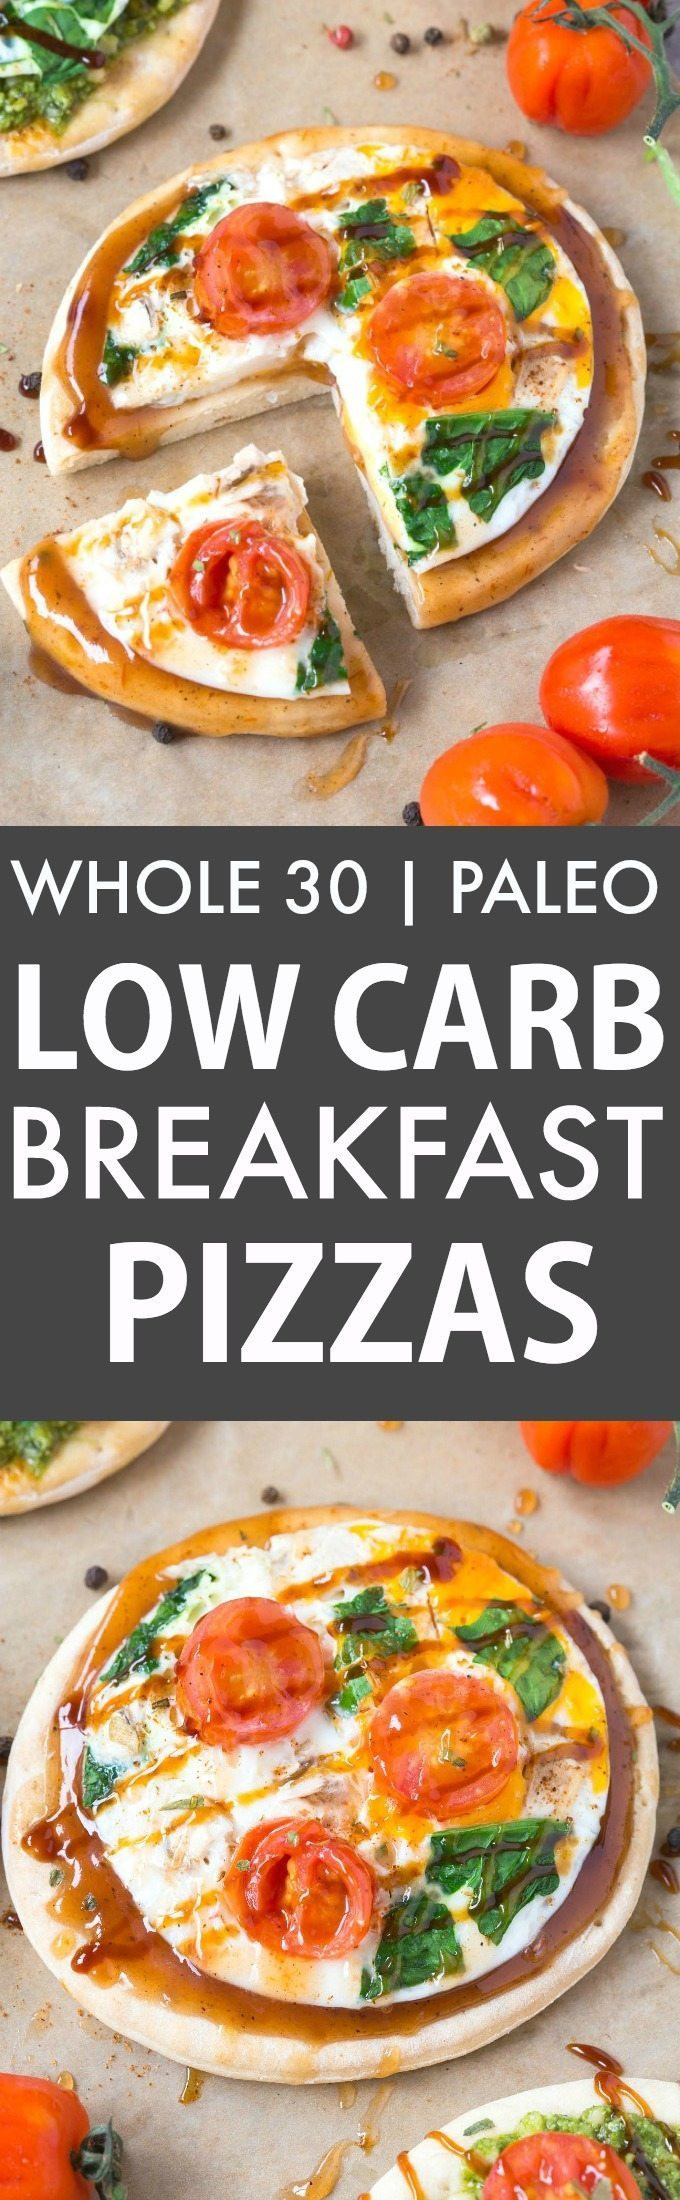 Low Carb Breakfast Pizza  Healthy Low Carb Breakfast Pizza Paleo Gluten Free